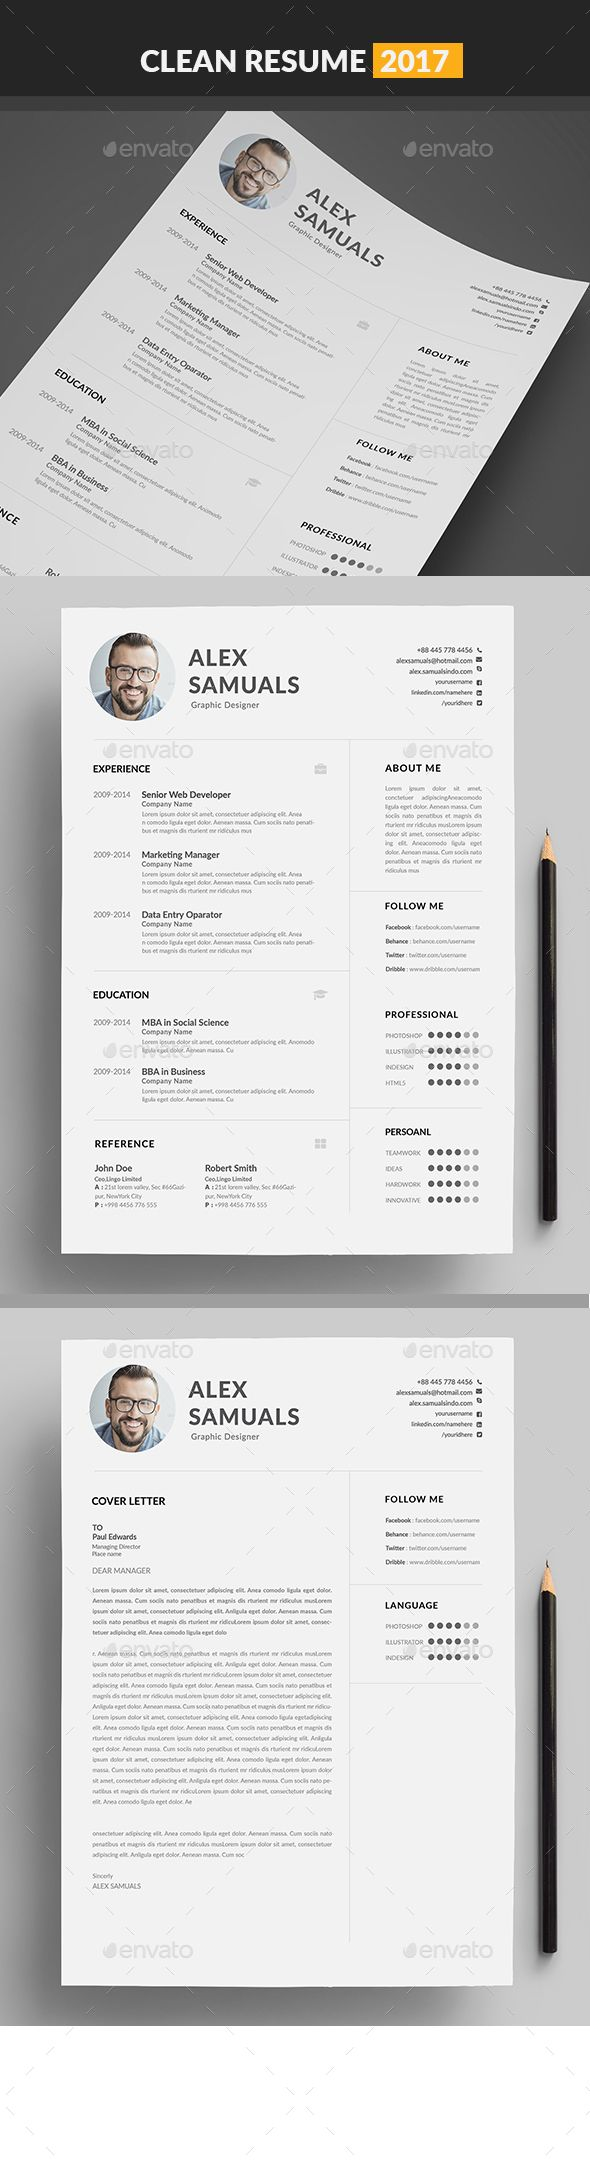 Resume Template Resumes Stationery 3577 best